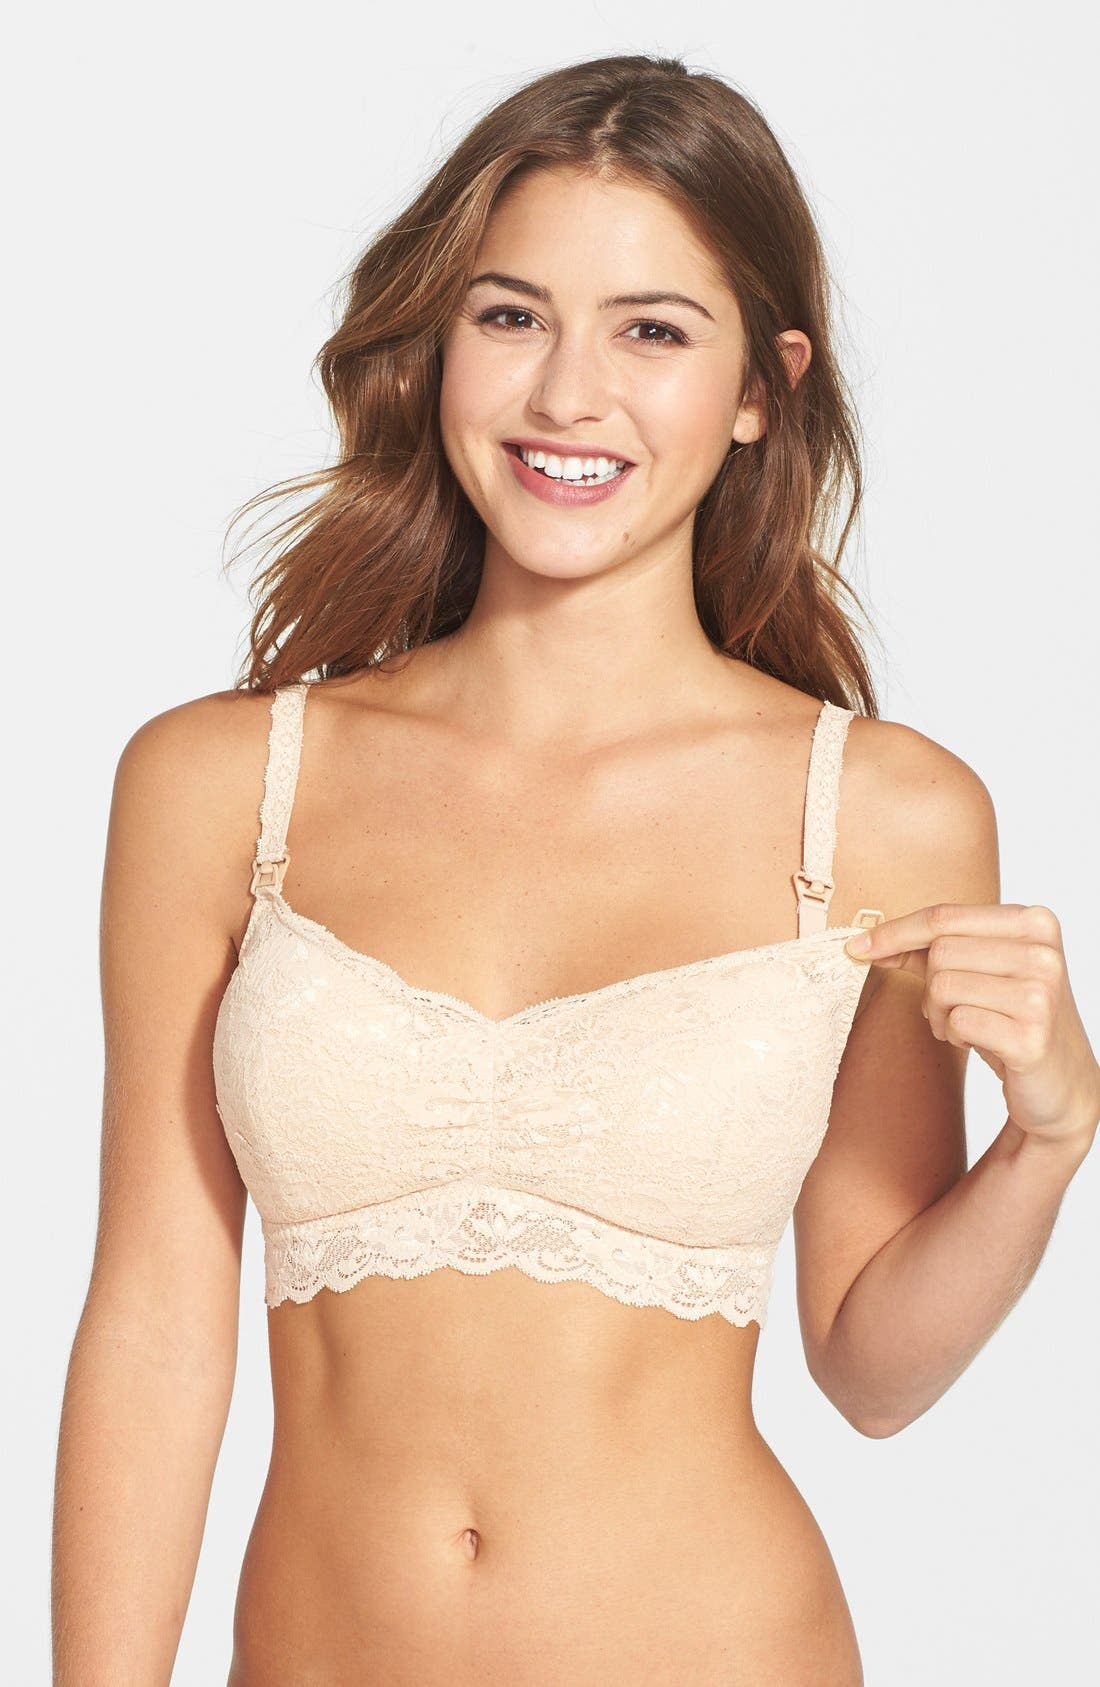 Cosabella 'Never Say Never Mommie' Soft Cup Nursing Bralette